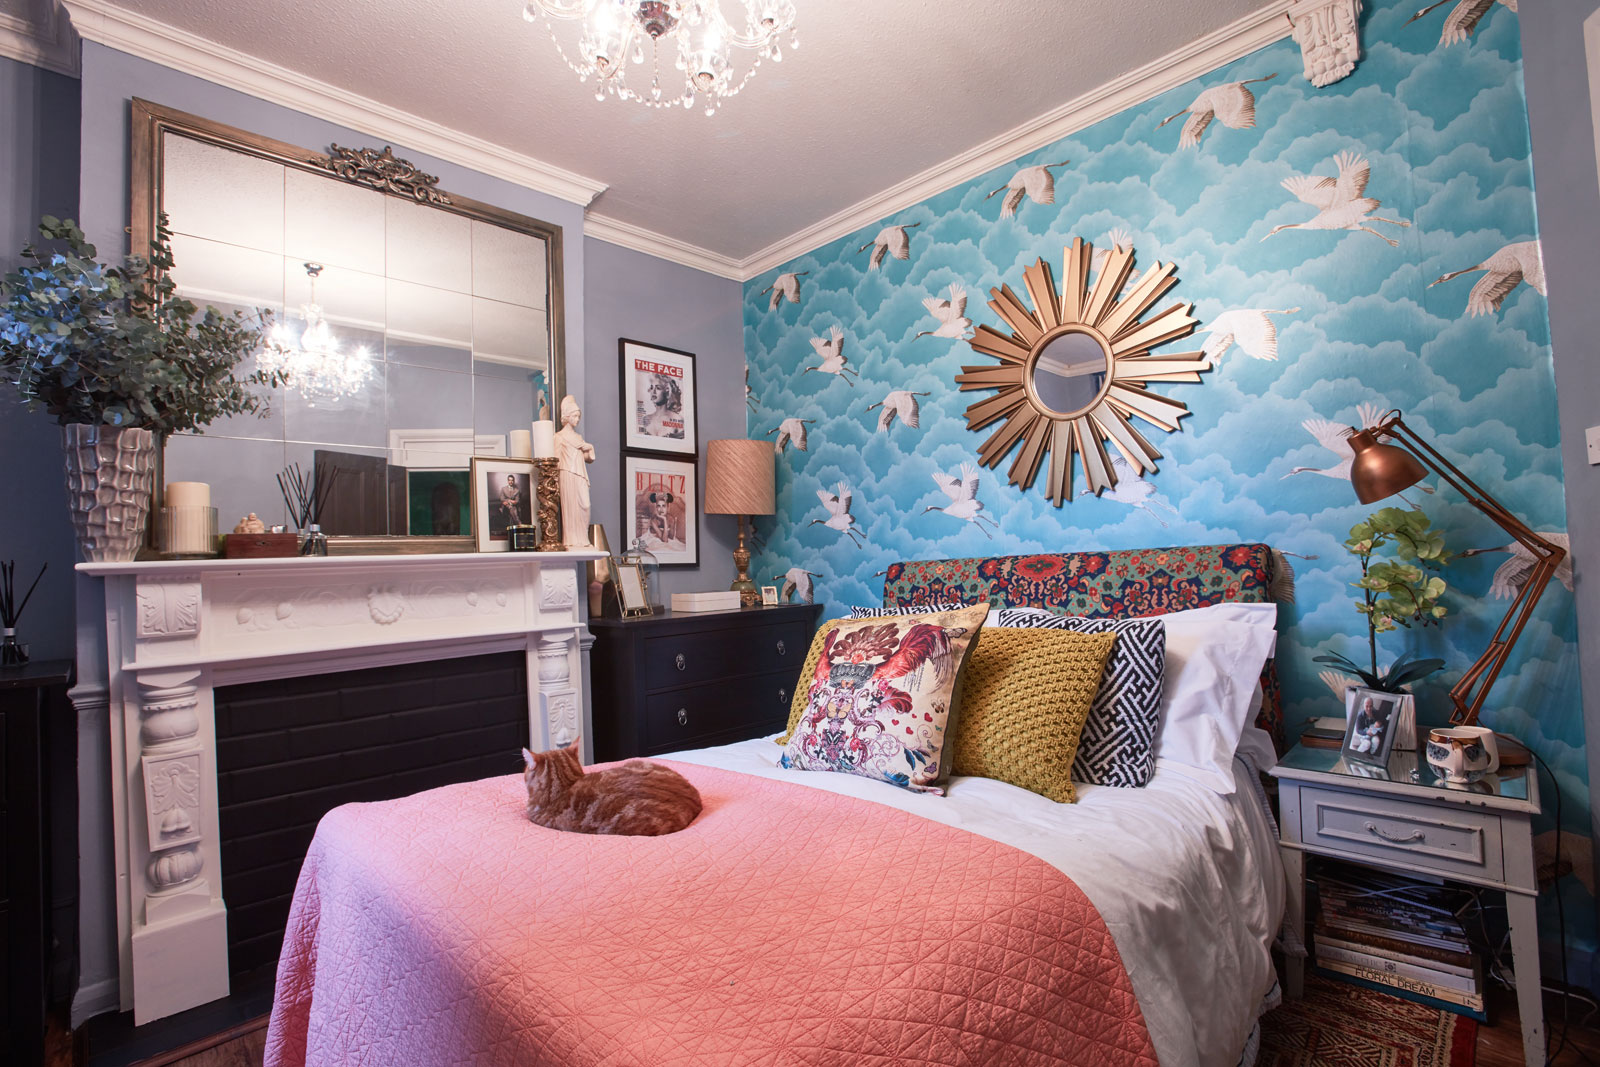 how to do maximalism on a budget with oliver thomas sophie maximilast bedroom with crane wallpaper and coral accents in the home of interior designer oliver thomas